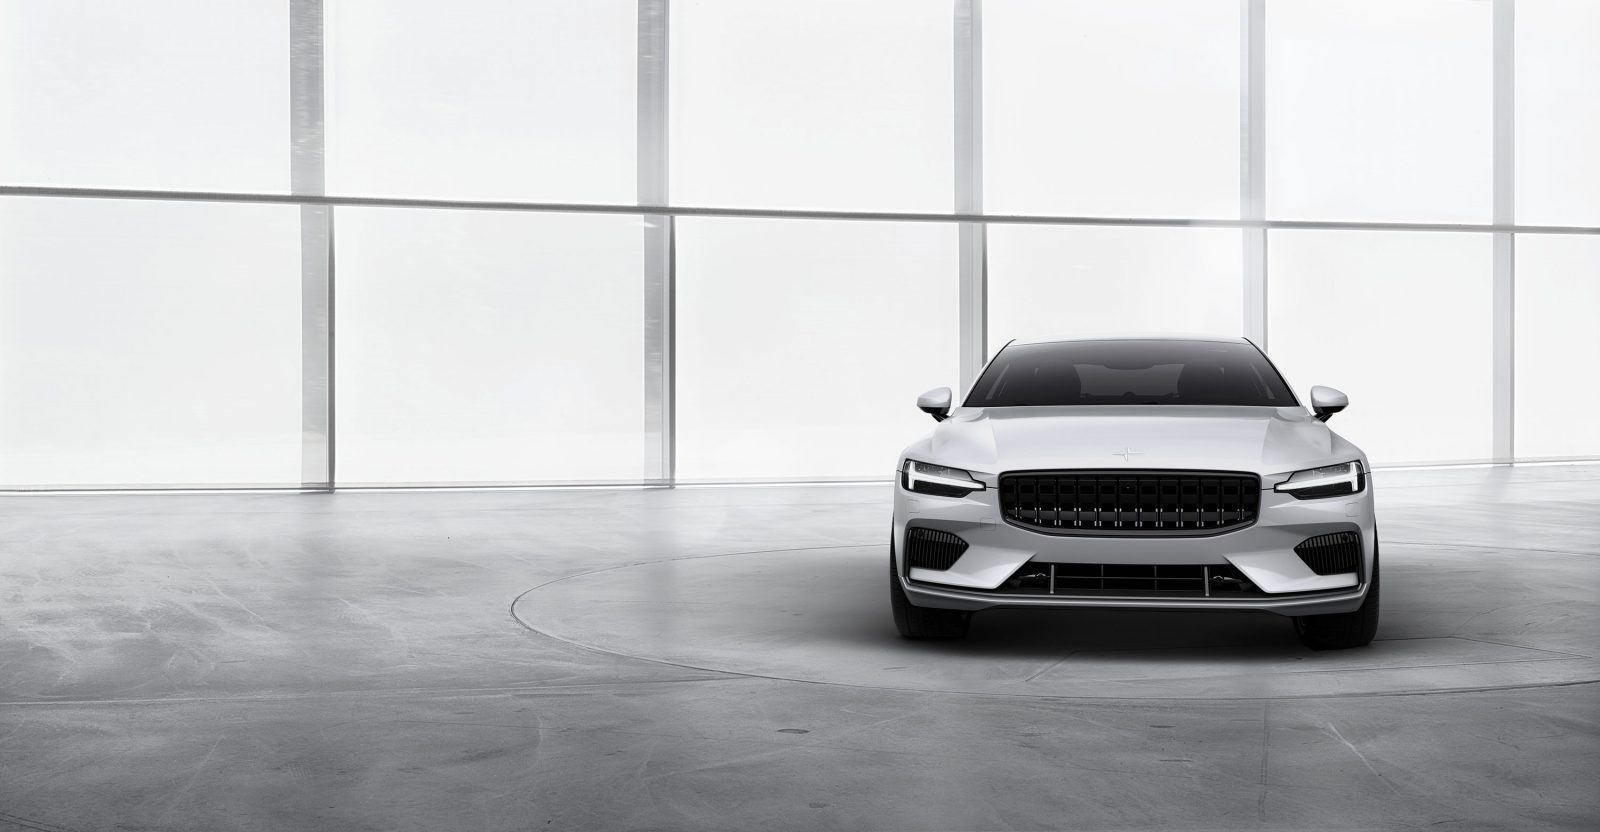 Volvo plans to become a serious competitor to Tesla in the electric vehicle market.